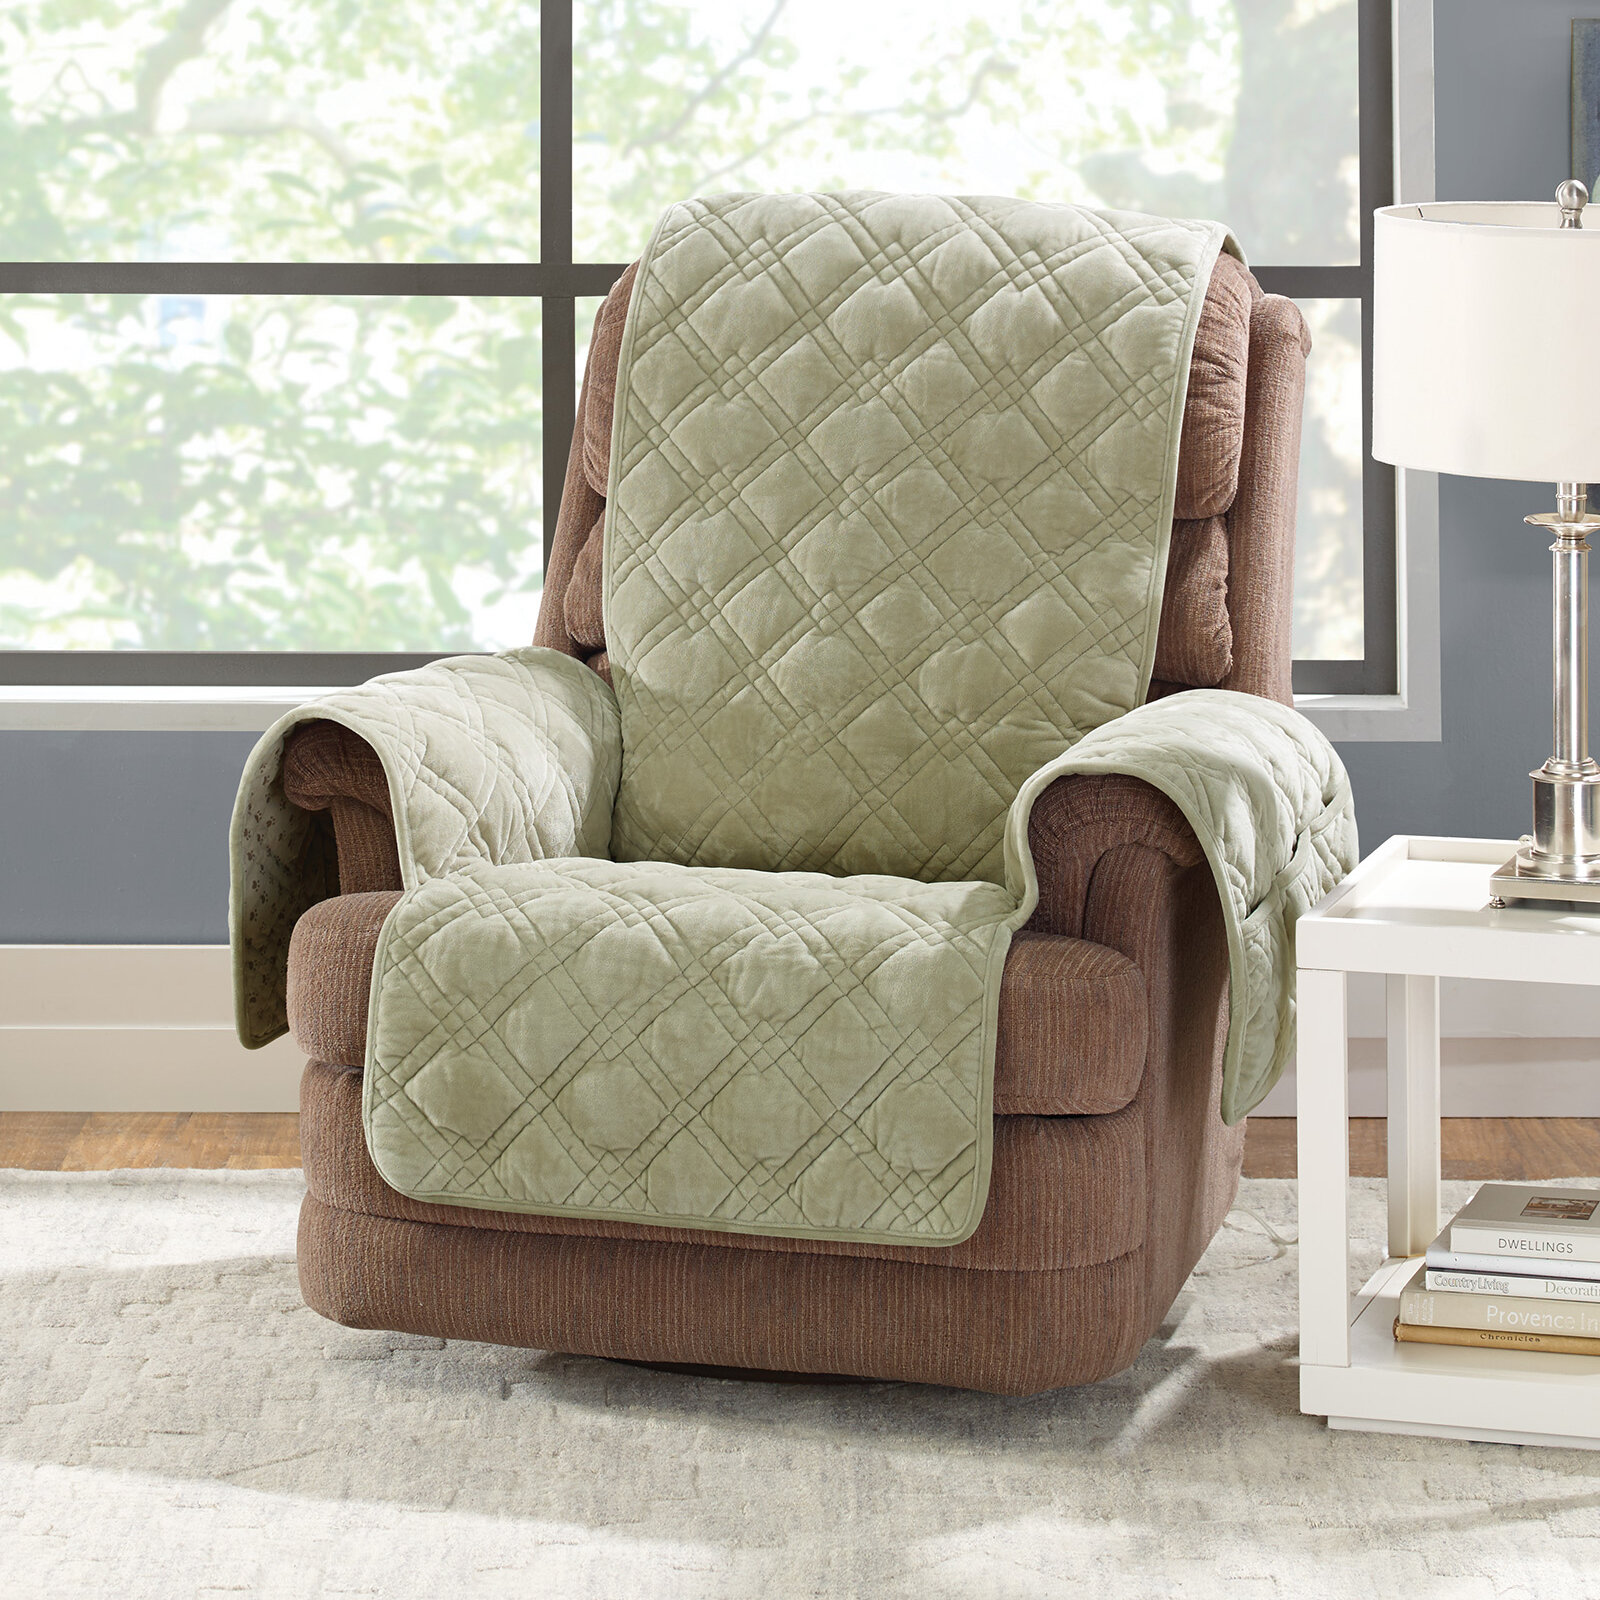 Plush Comfort Recliner Slipcover. By Sure Fit